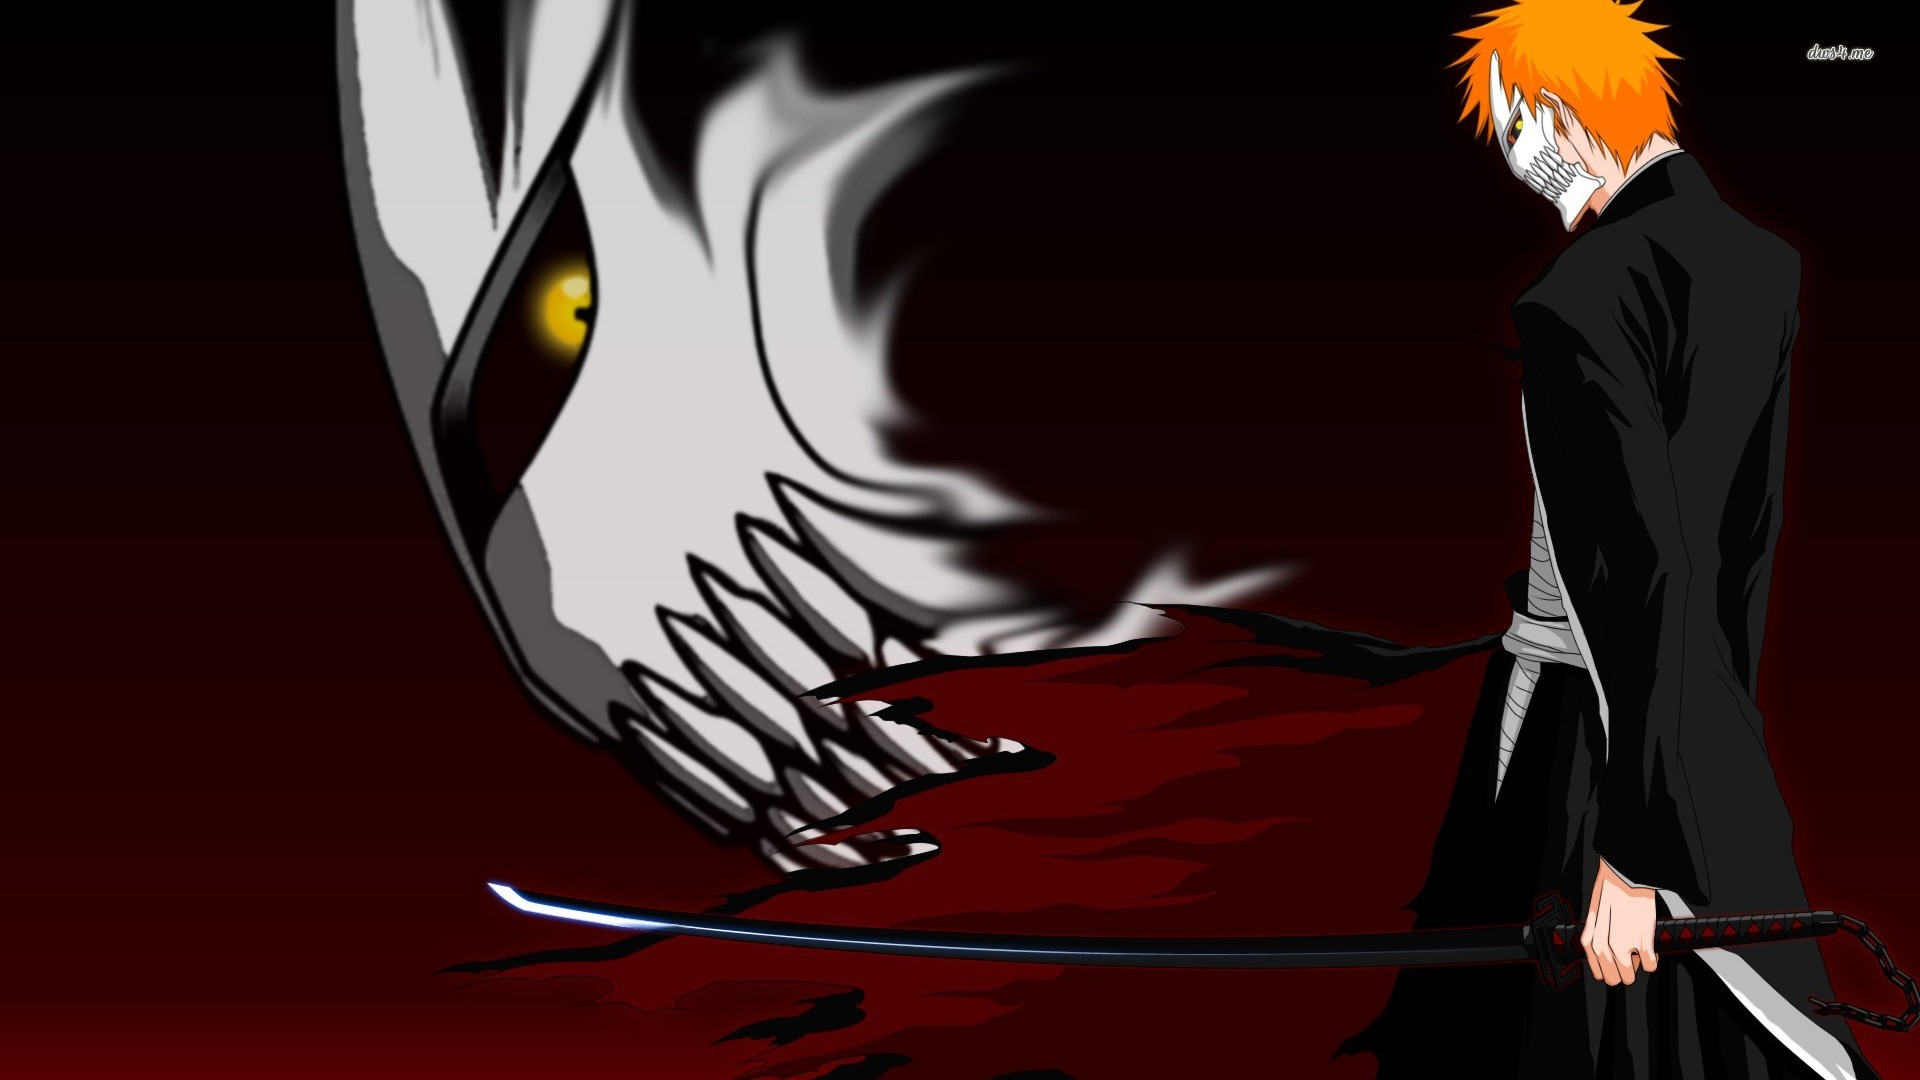 bleach wallpaper 1920 x 1080 - photo #47